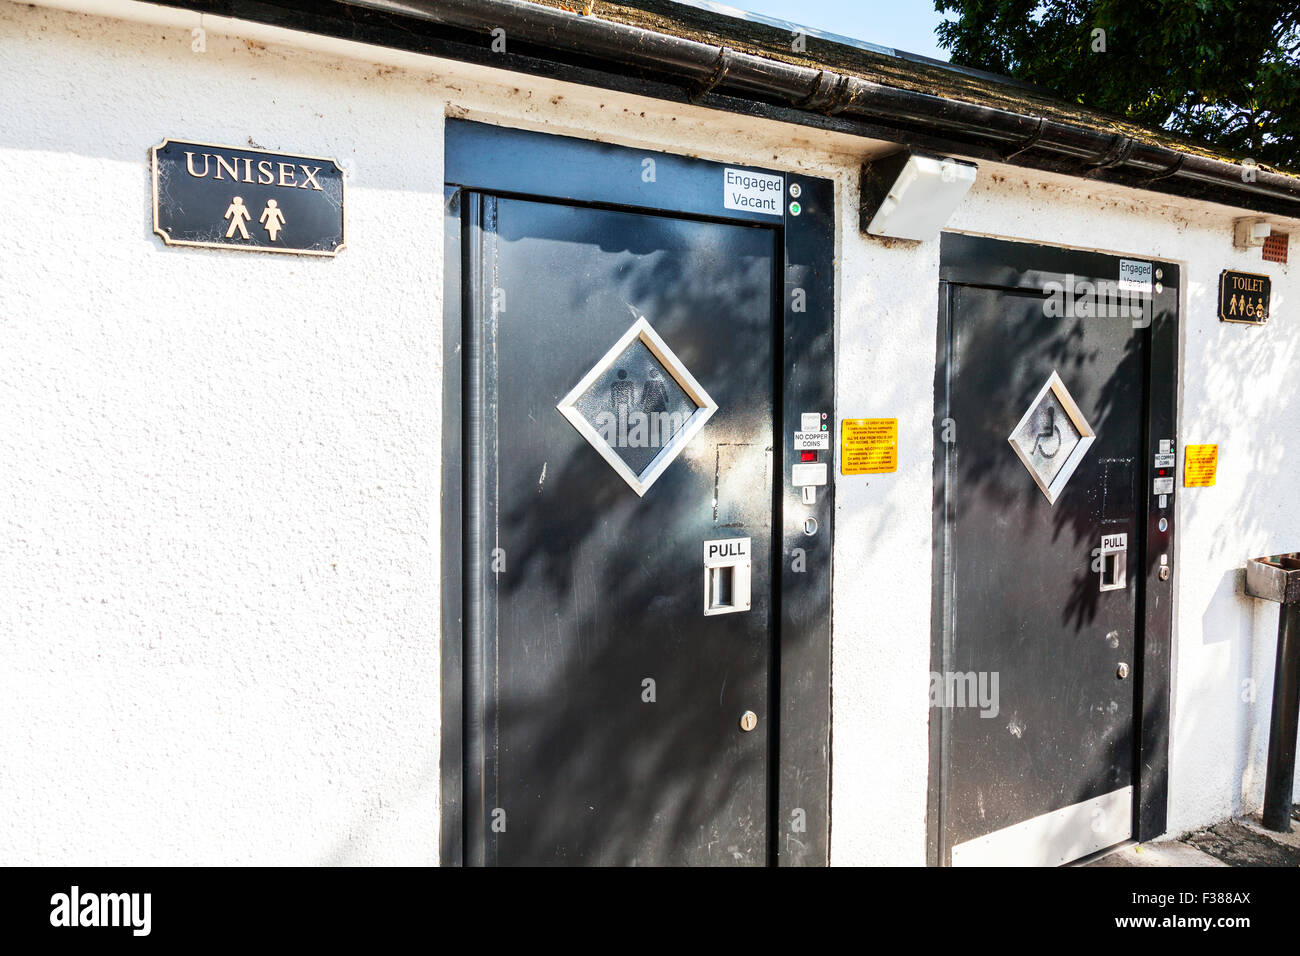 unisex toilet toilets pay payment needed to spend penny shared convenience conveniences Kirkby Stephen Yorkshire - Stock Image